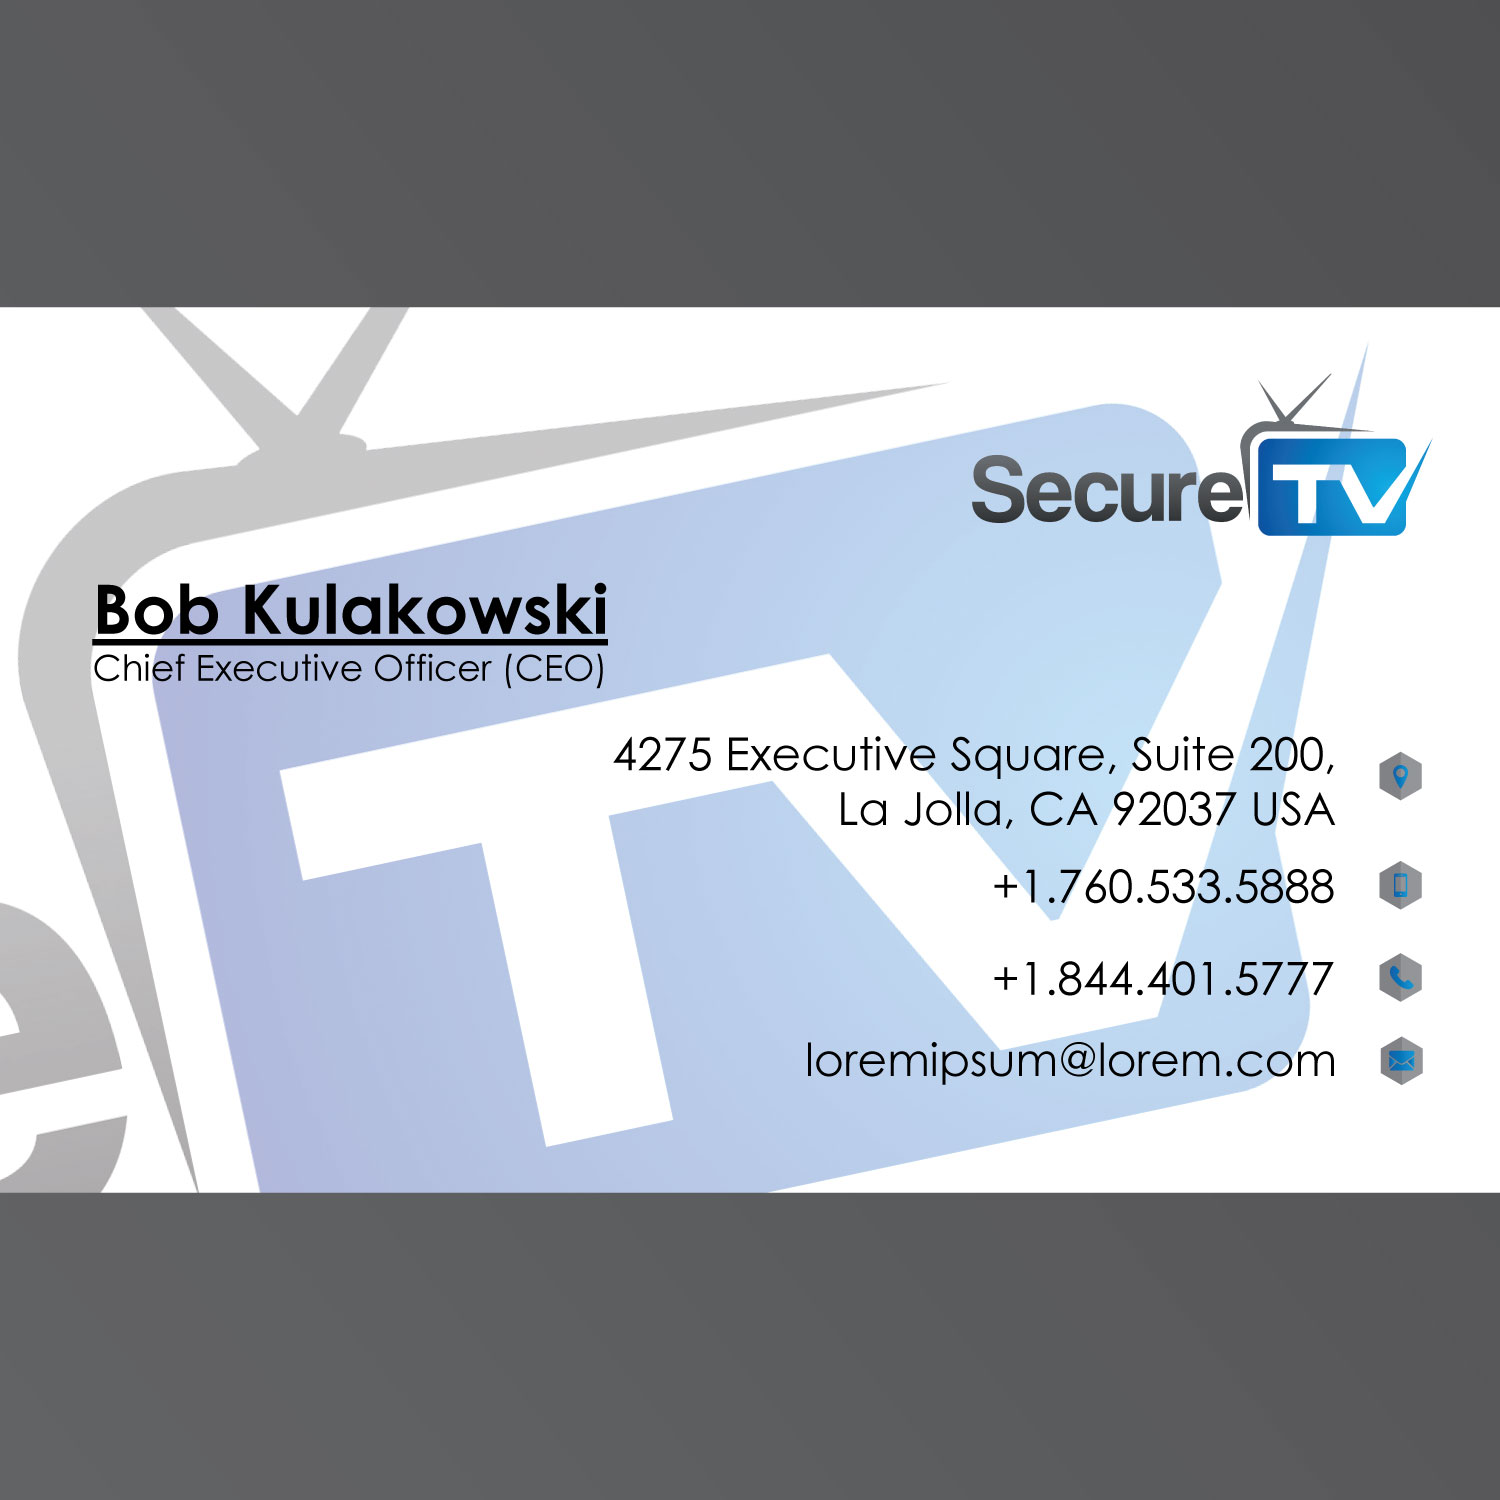 professional serious cable tv business card design for secure tv